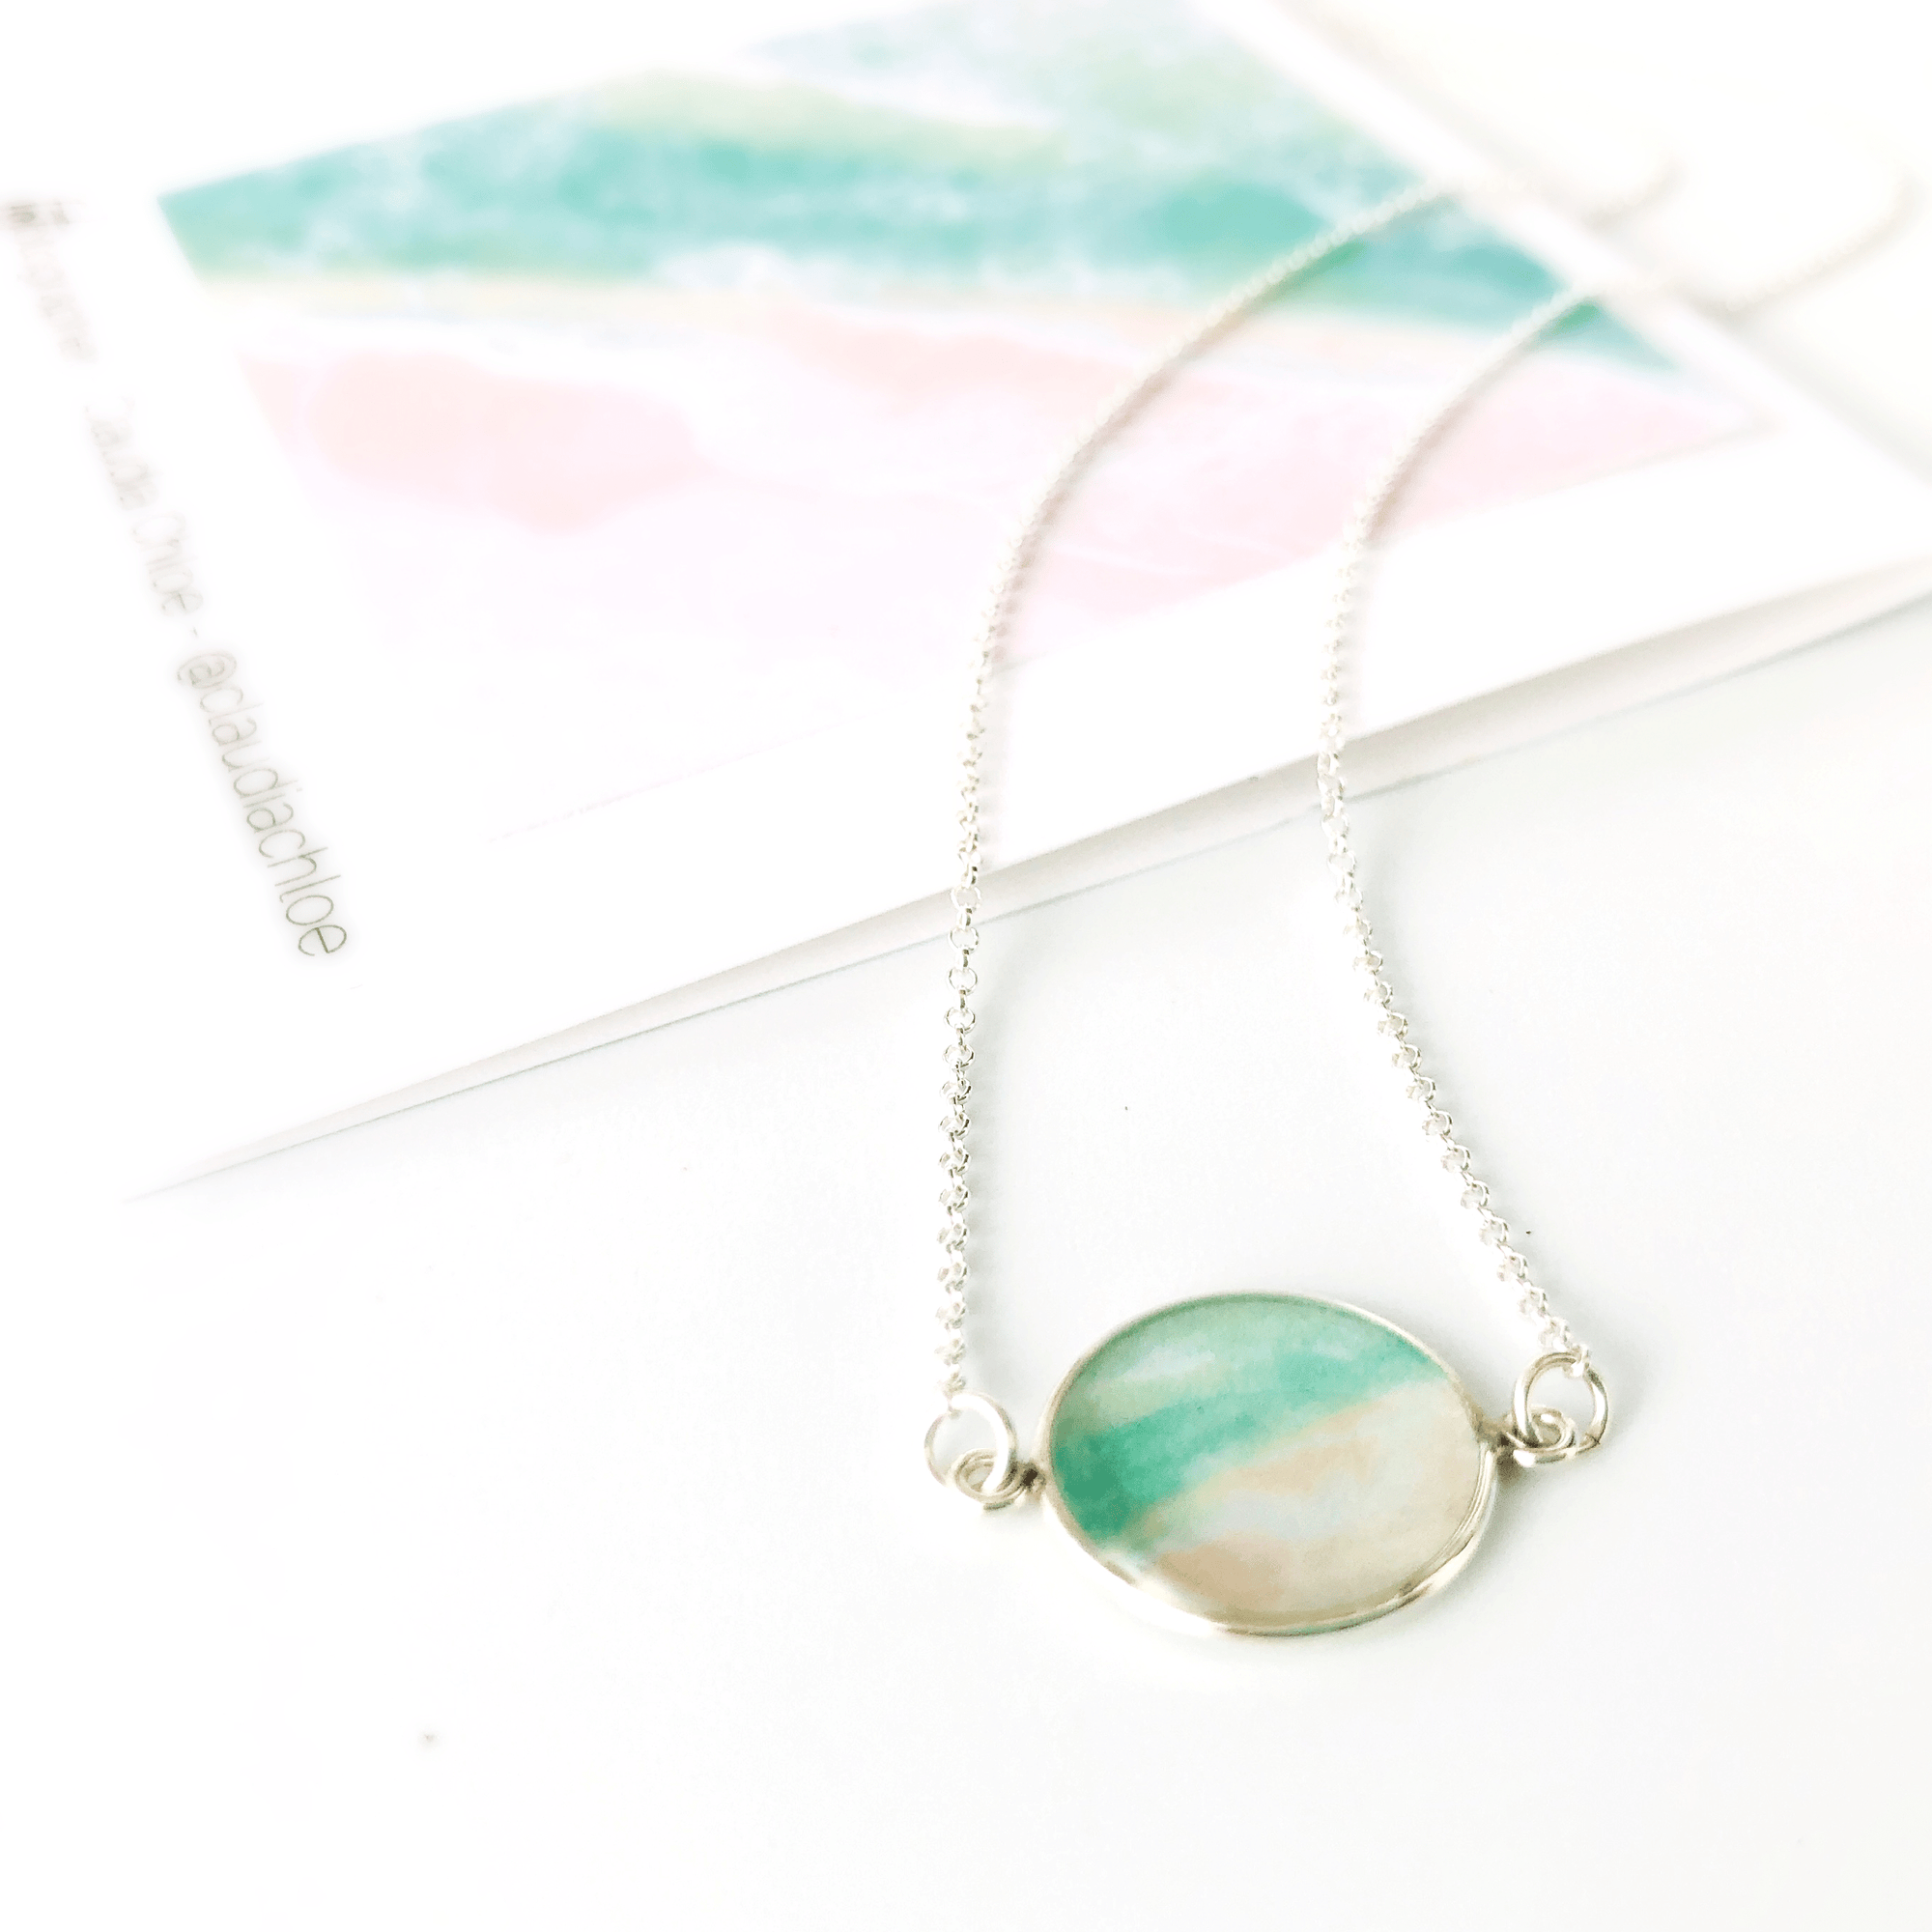 Good Things Come in Waves - Jersey Shore Mini-circle Necklace